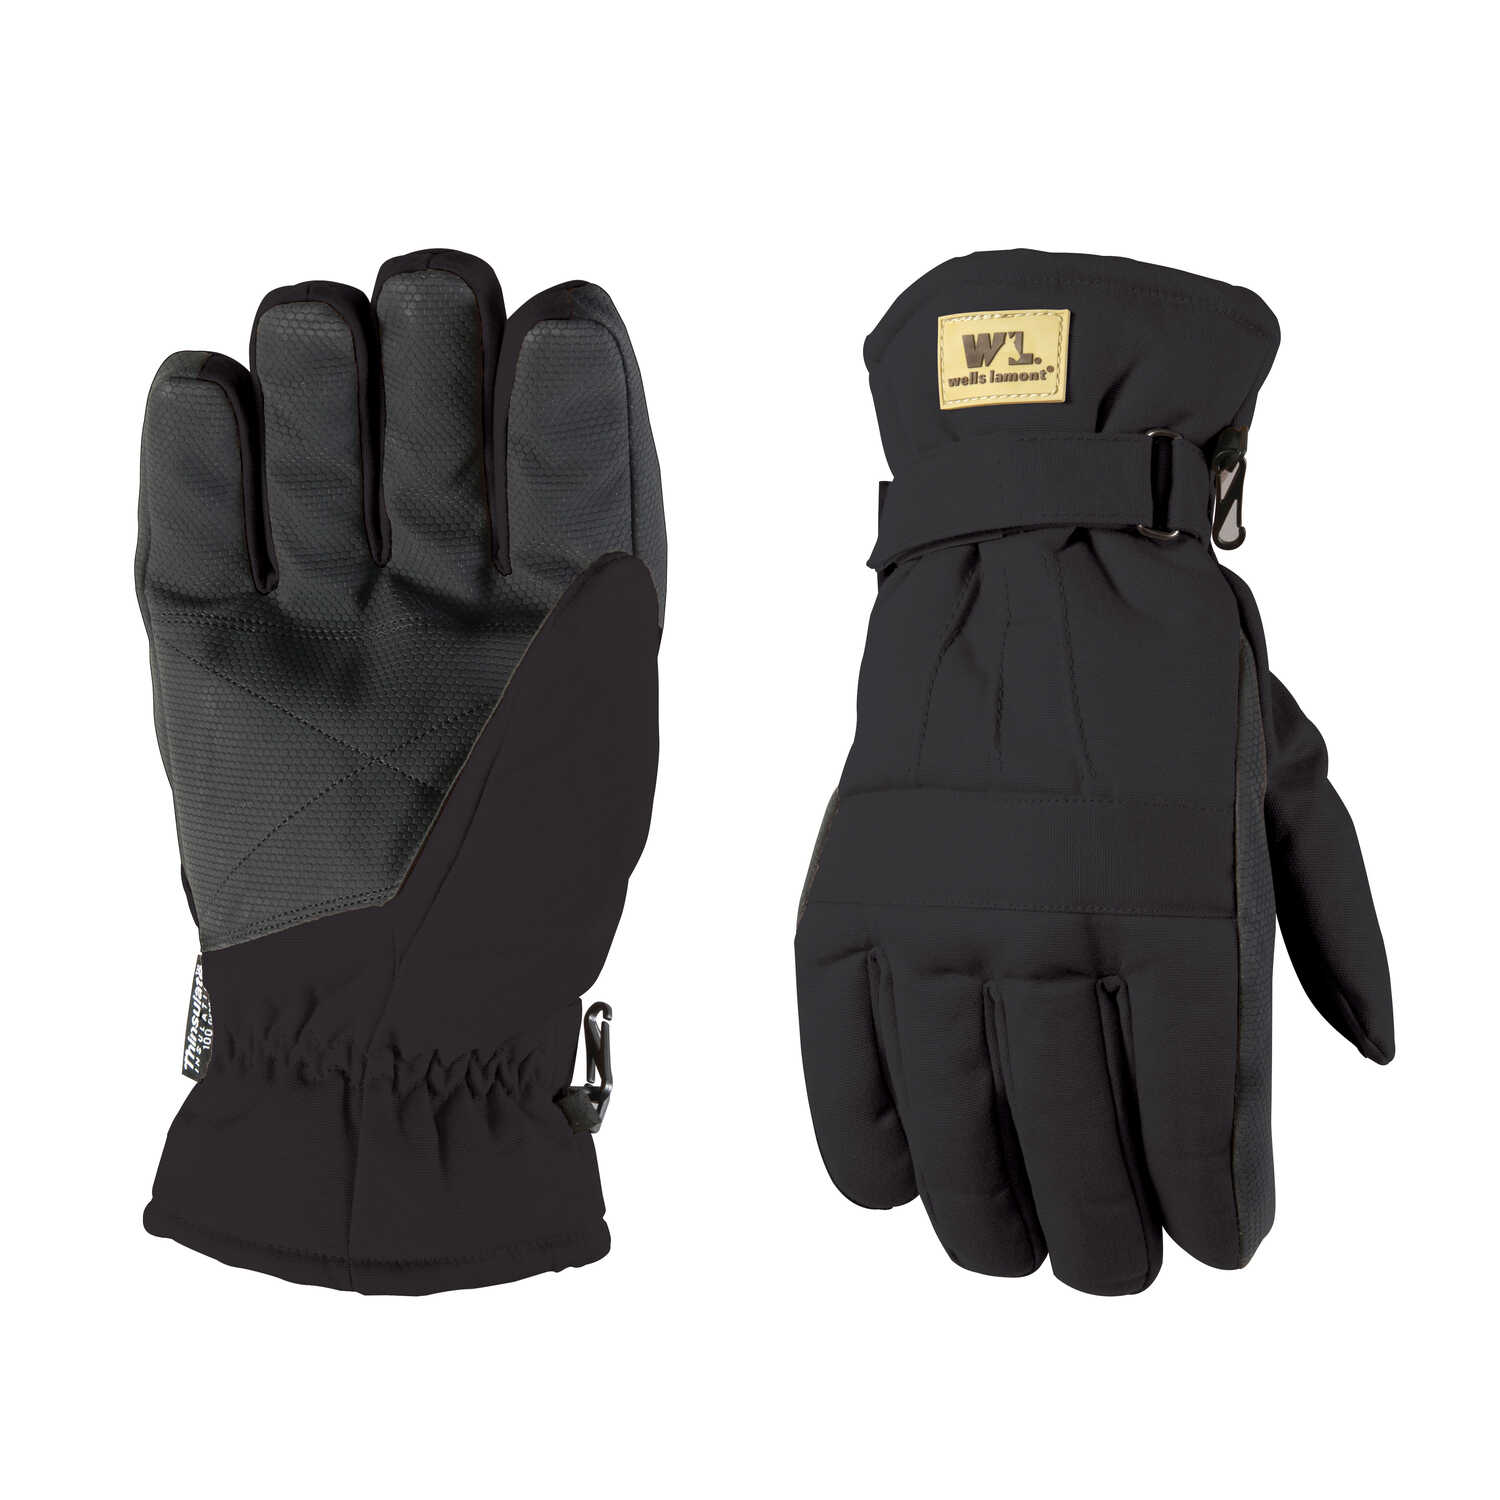 Wells Lamont  Black  Gloves  XL